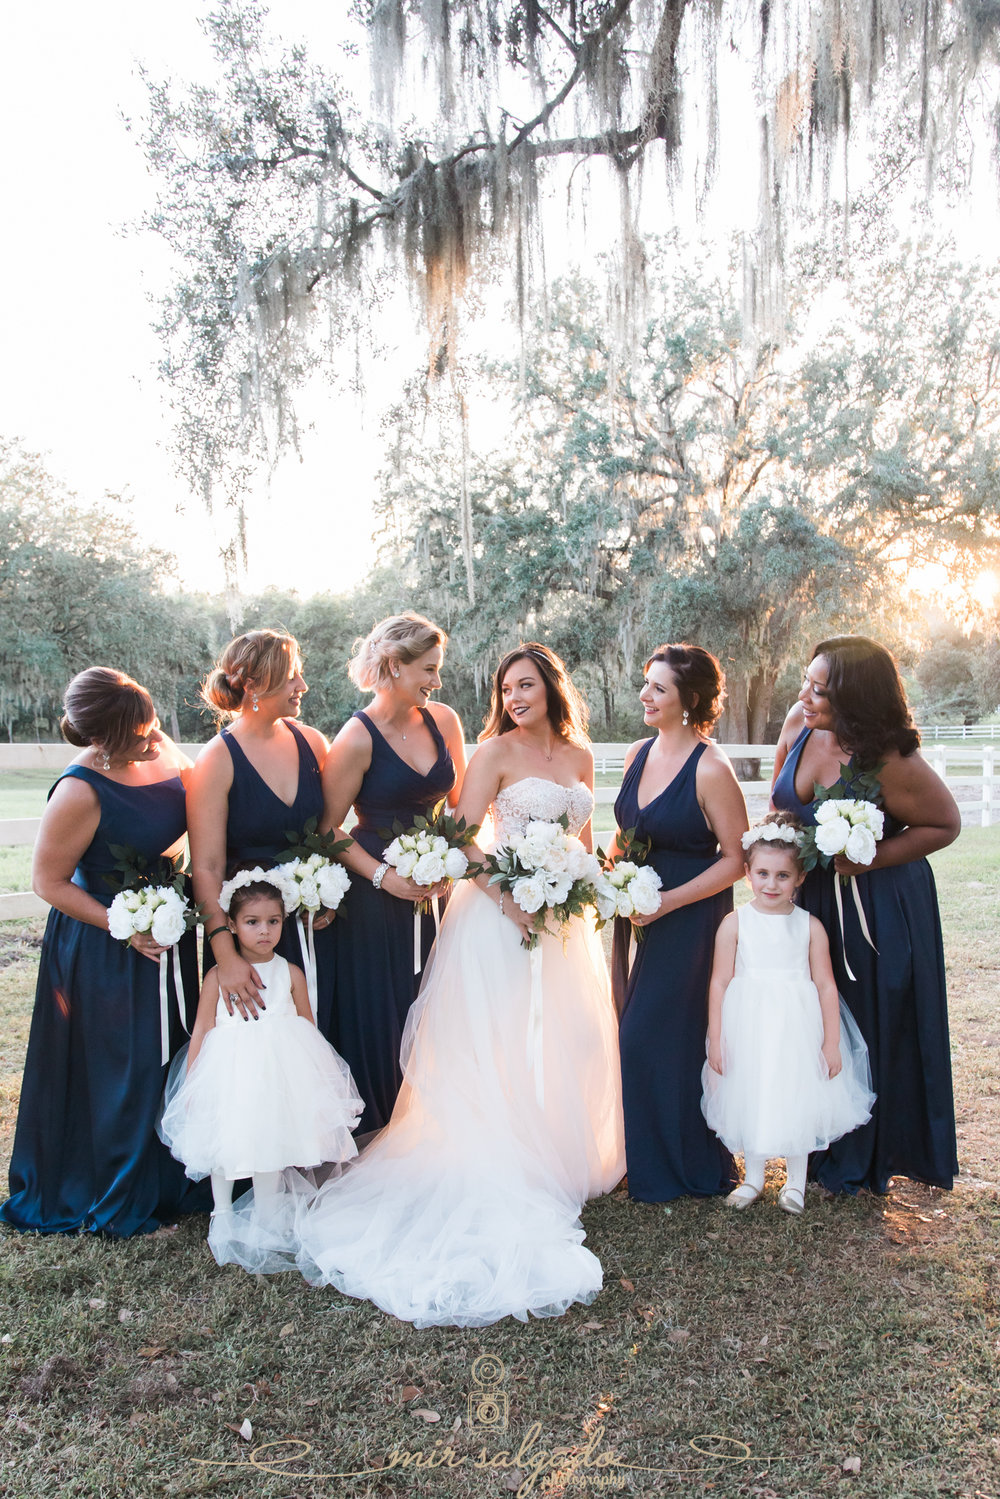 The-Lange-Farm-wedding, Tampa-wedding, bride-and-bridesmaids-photo